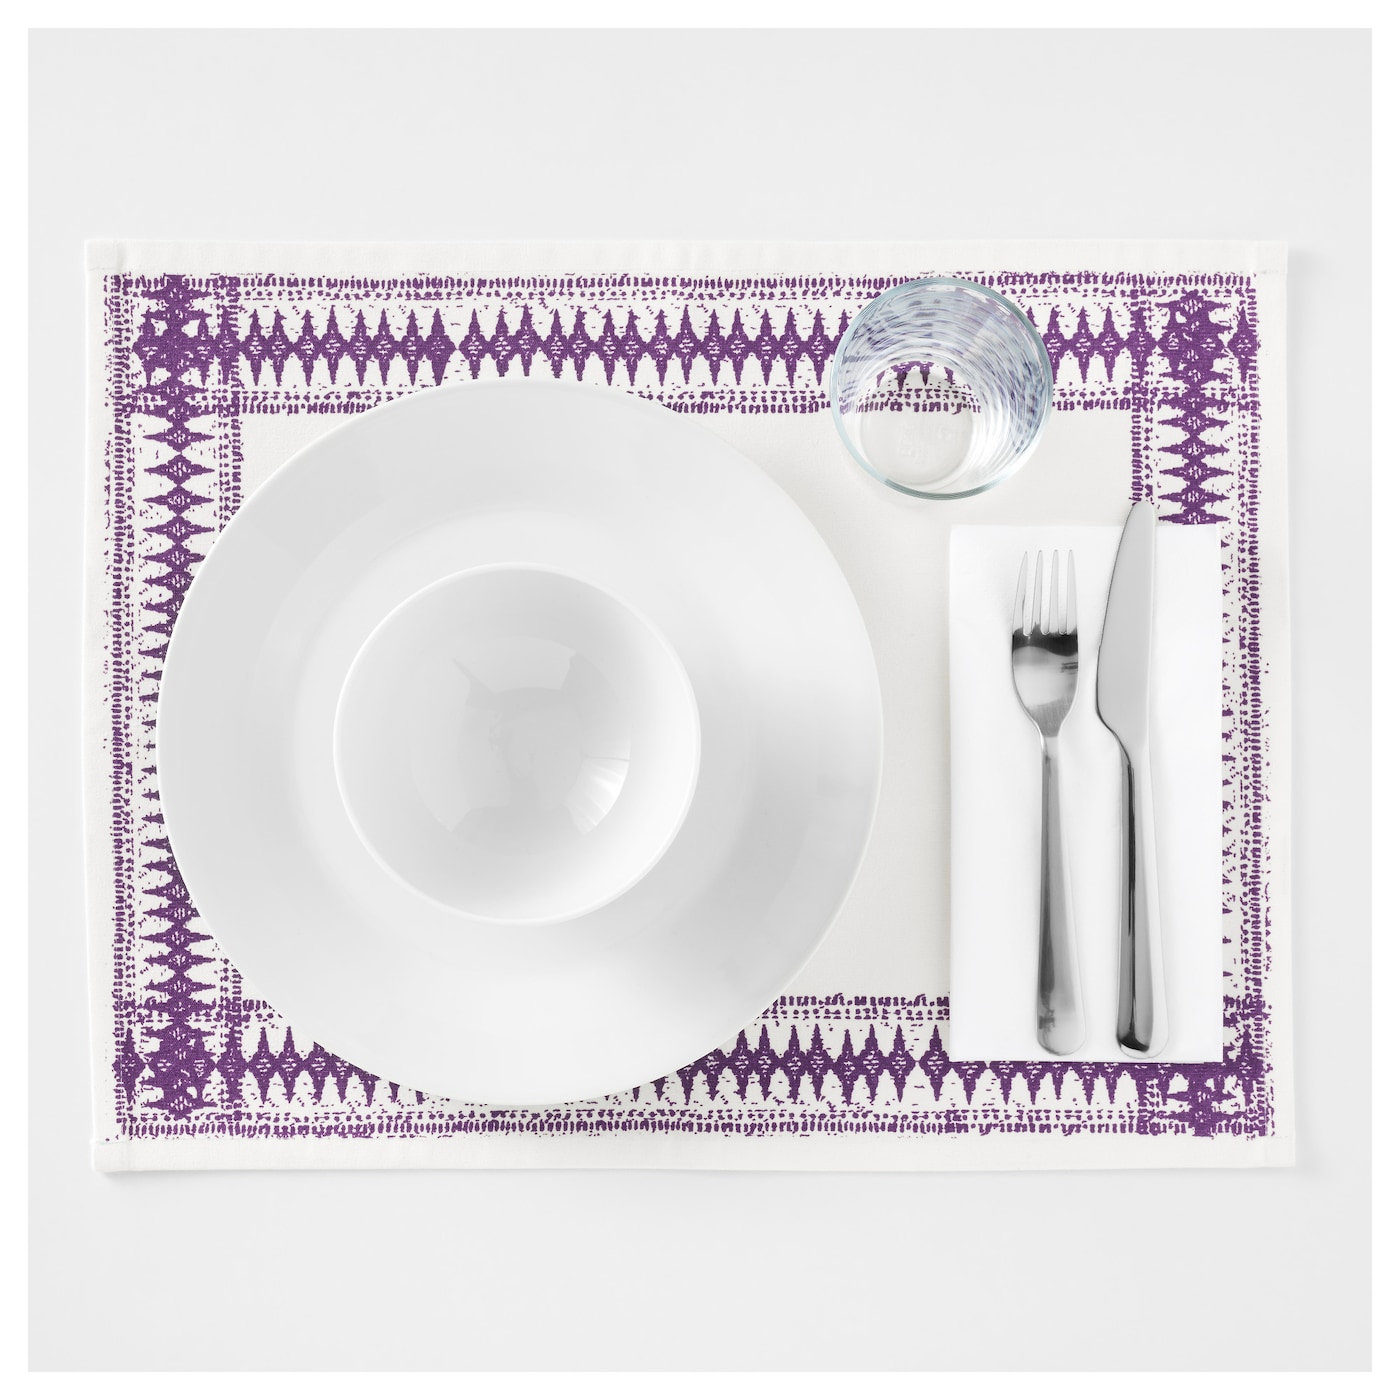 IKEA SOMMAR 2017 place mat Protects the table top surface and reduces noise from plates and cutlery.